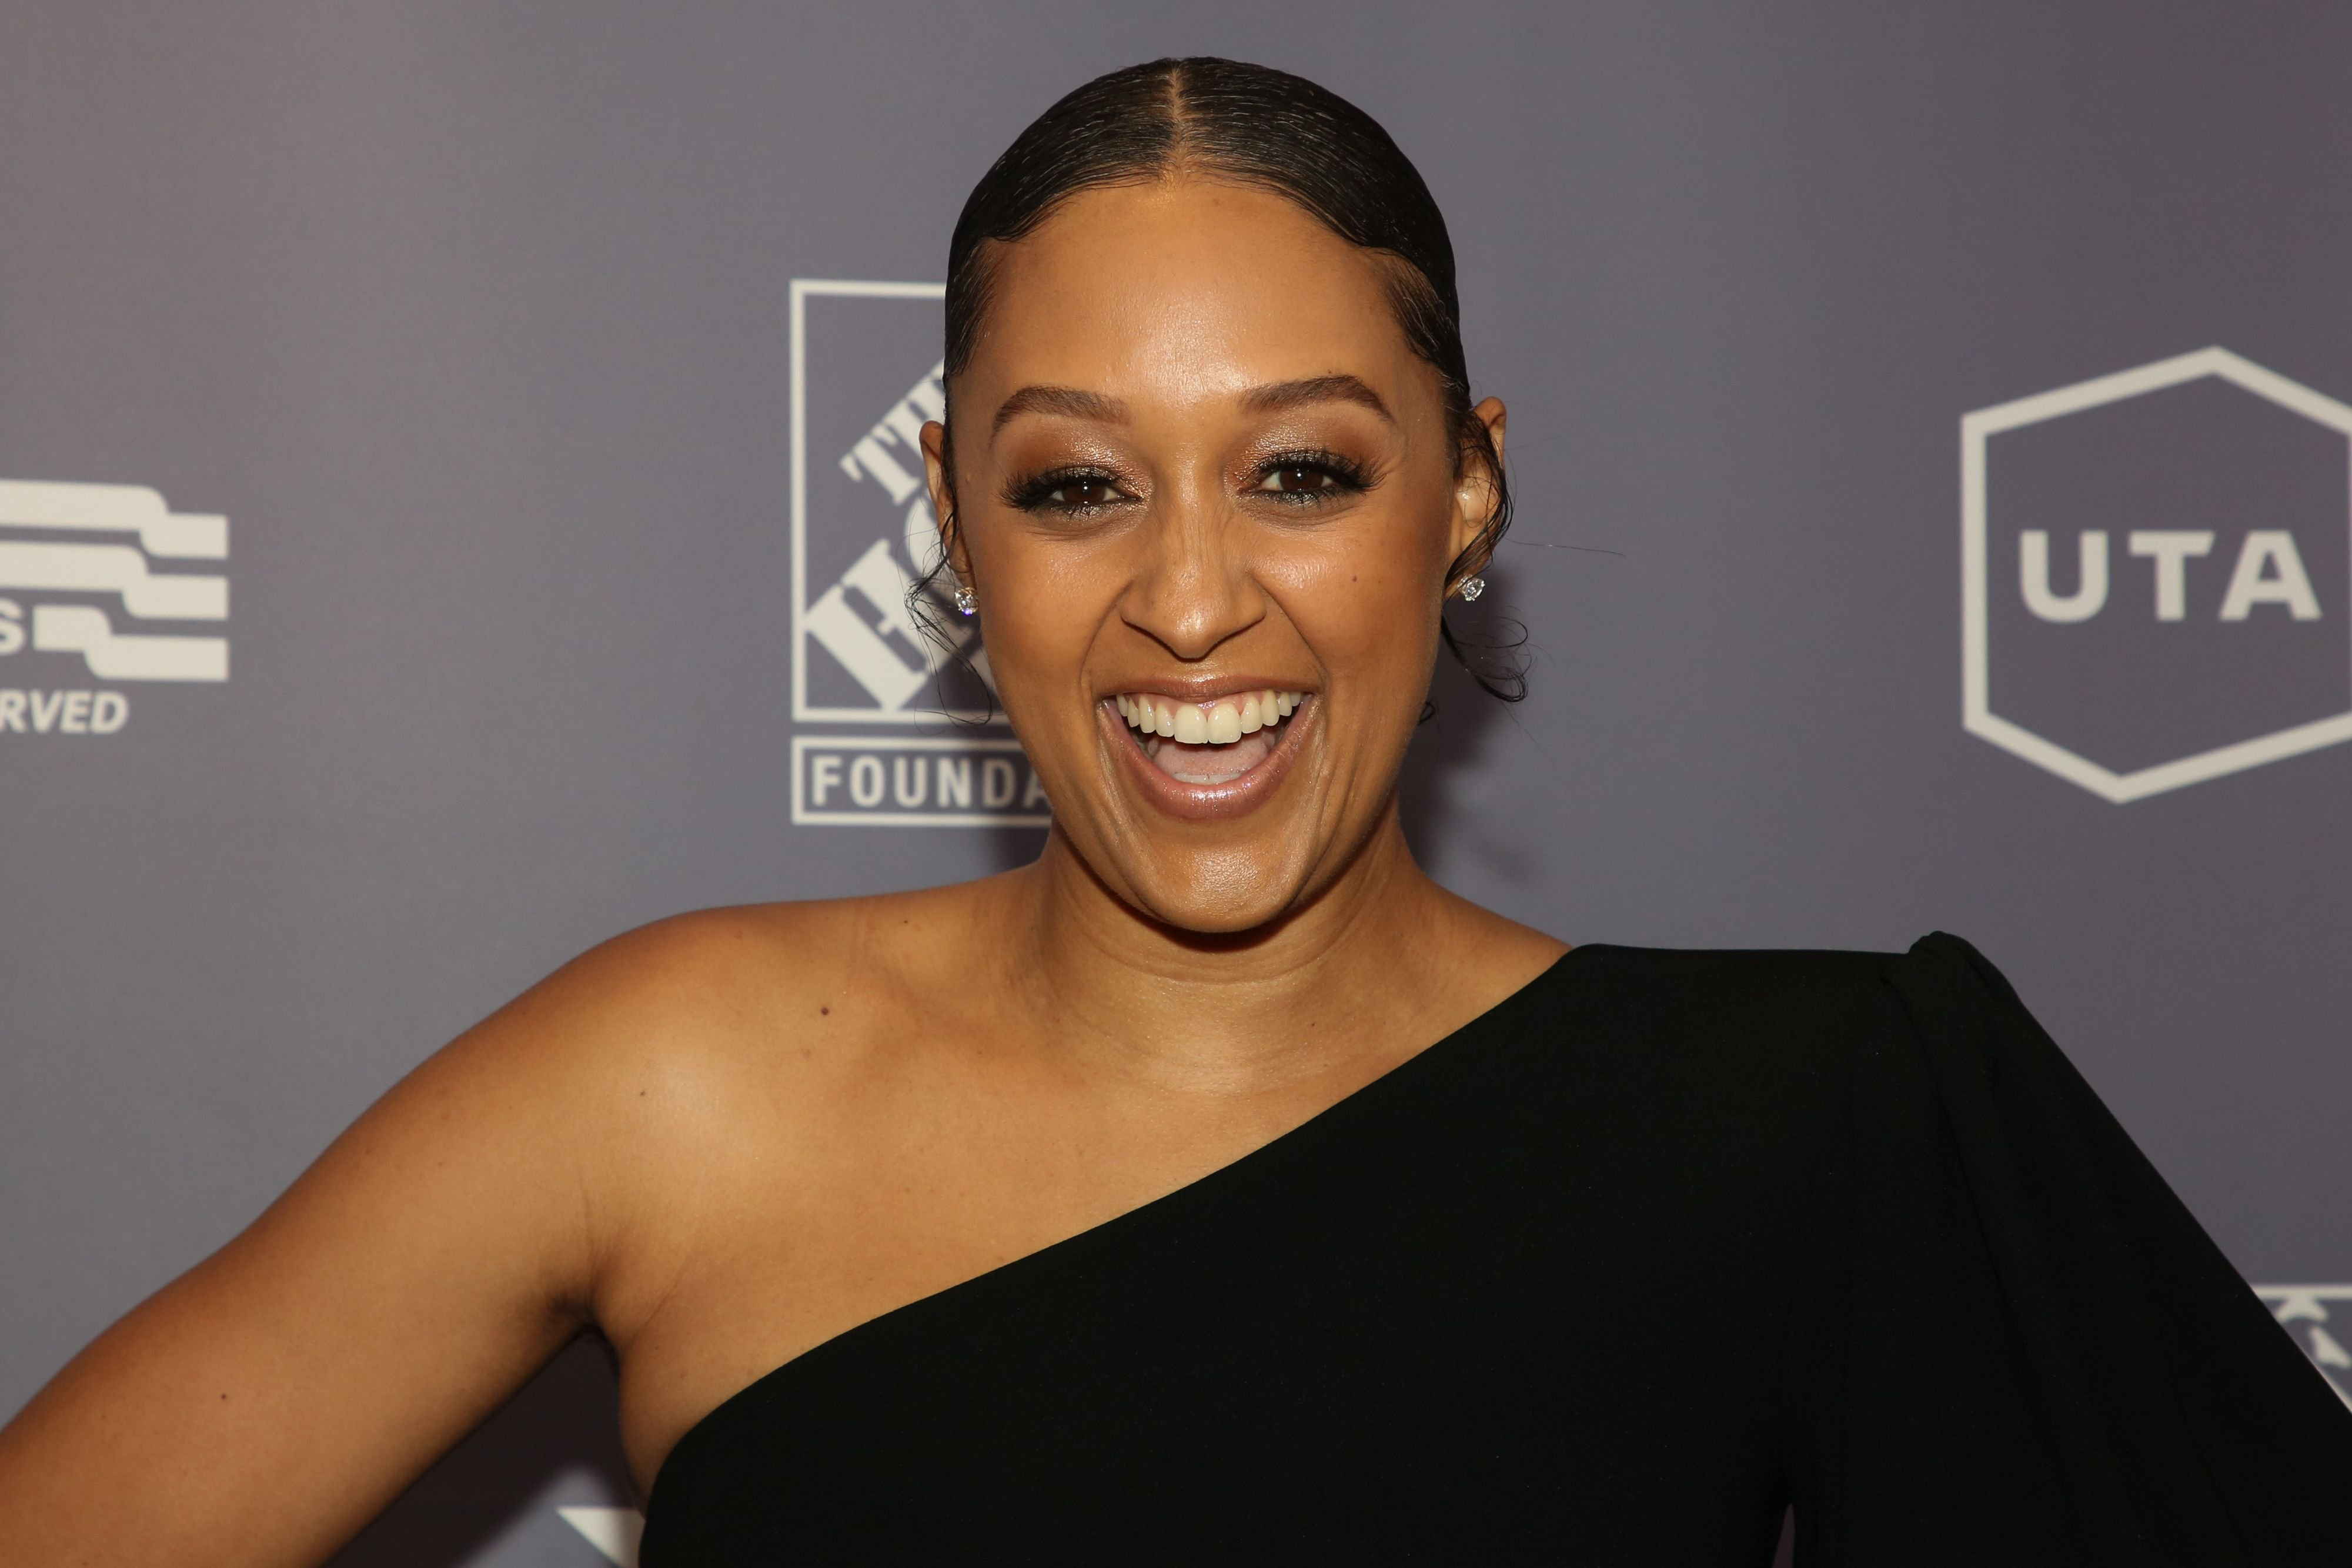 Tia Mowry during the 2019 U.S. Vets Salute Gala at The Beverly Hilton Hotel on November 05, 2019 in Beverly Hills, California. | Source: Getty Images